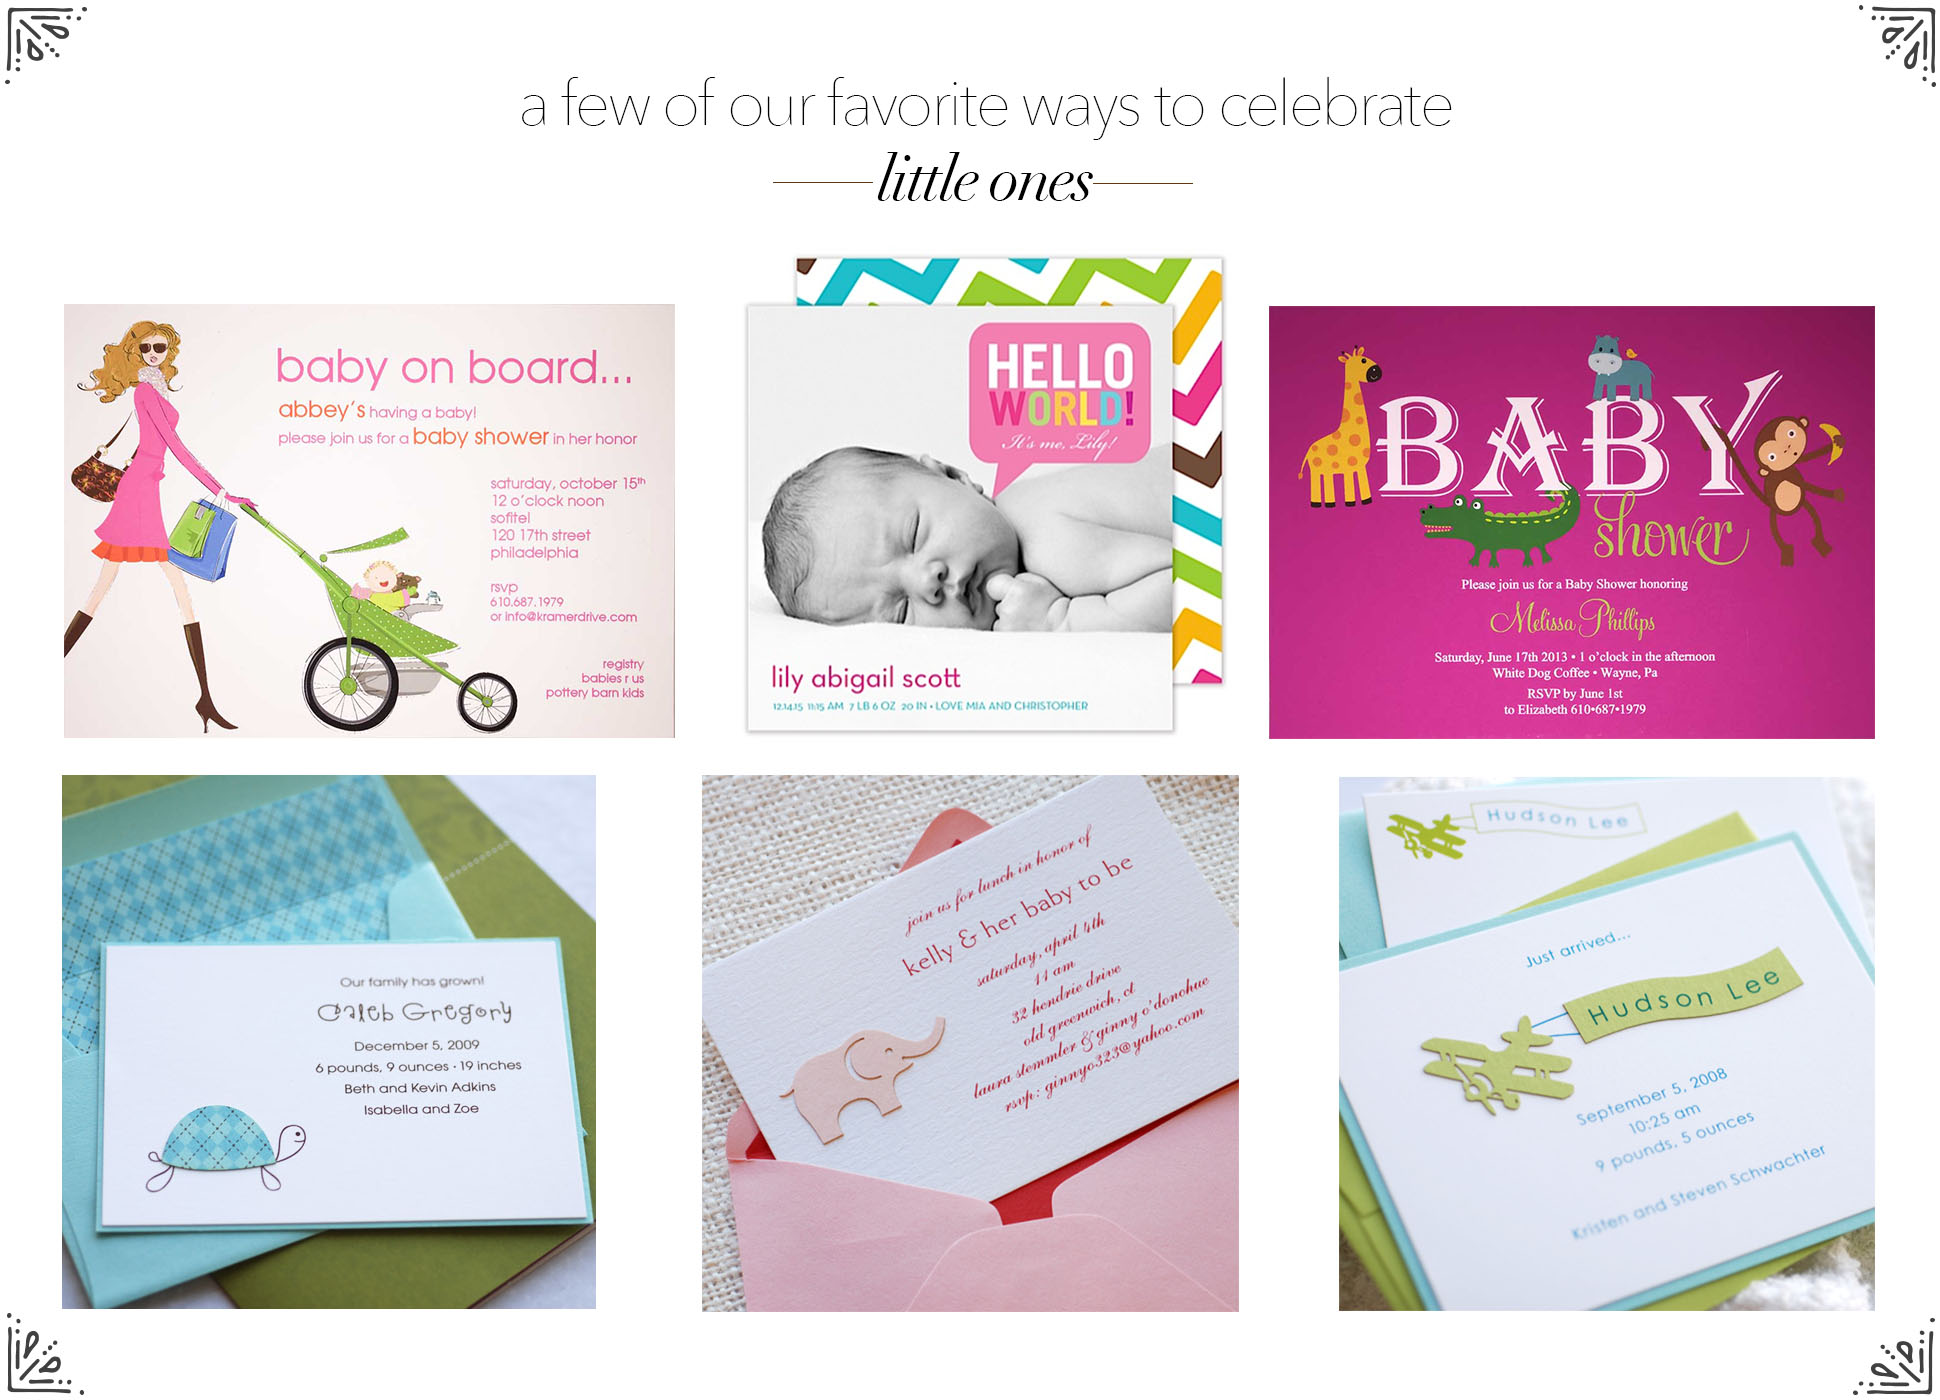 rsvp-baby-category-page.jpg